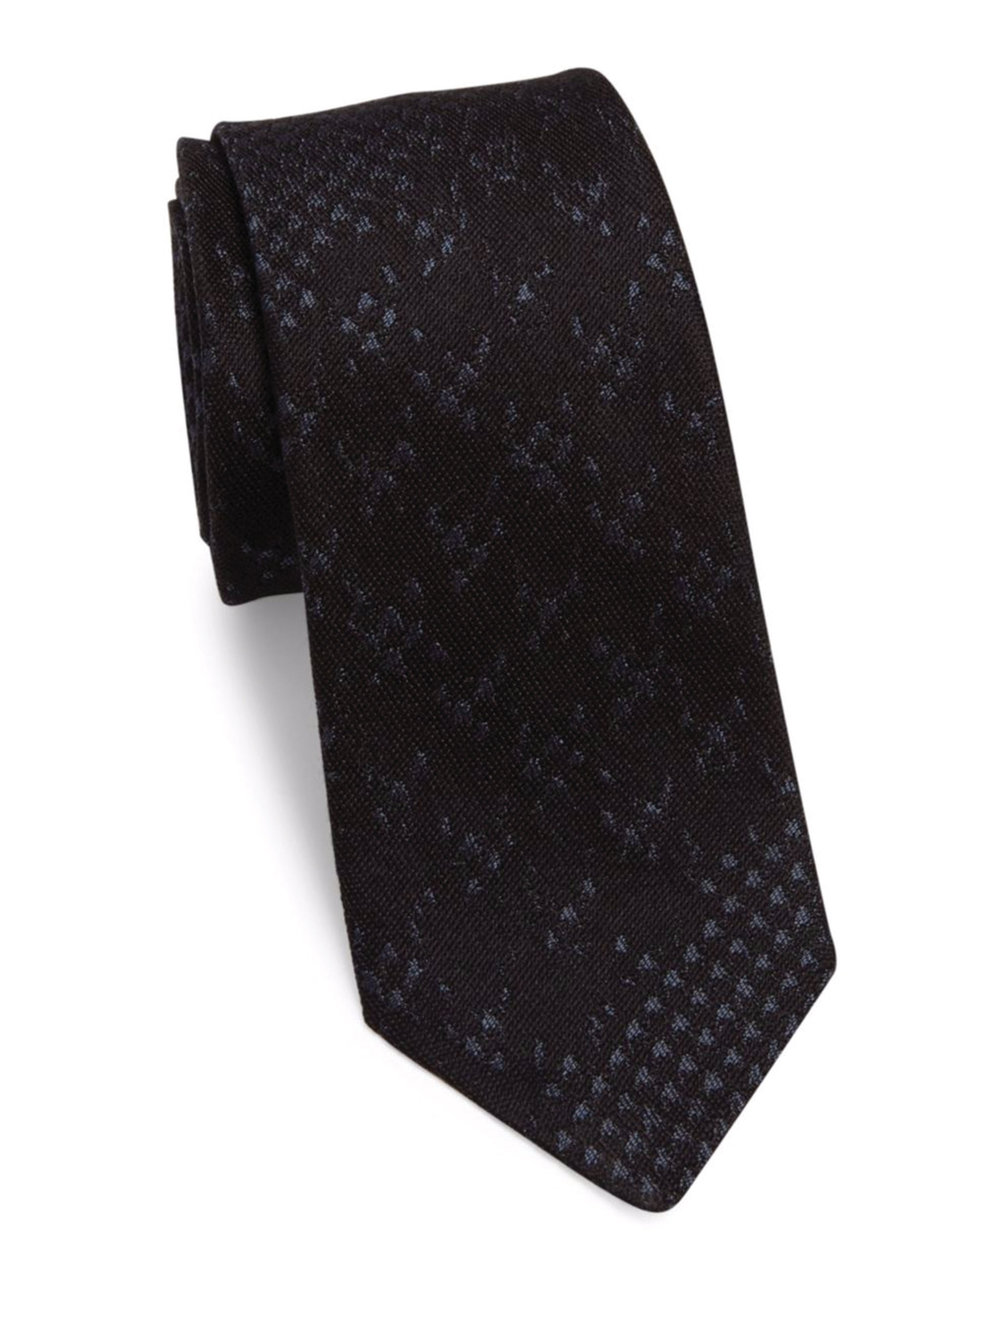 8.Textured Silk Tie by Burberry‭ ‬$250,  burberry.ca